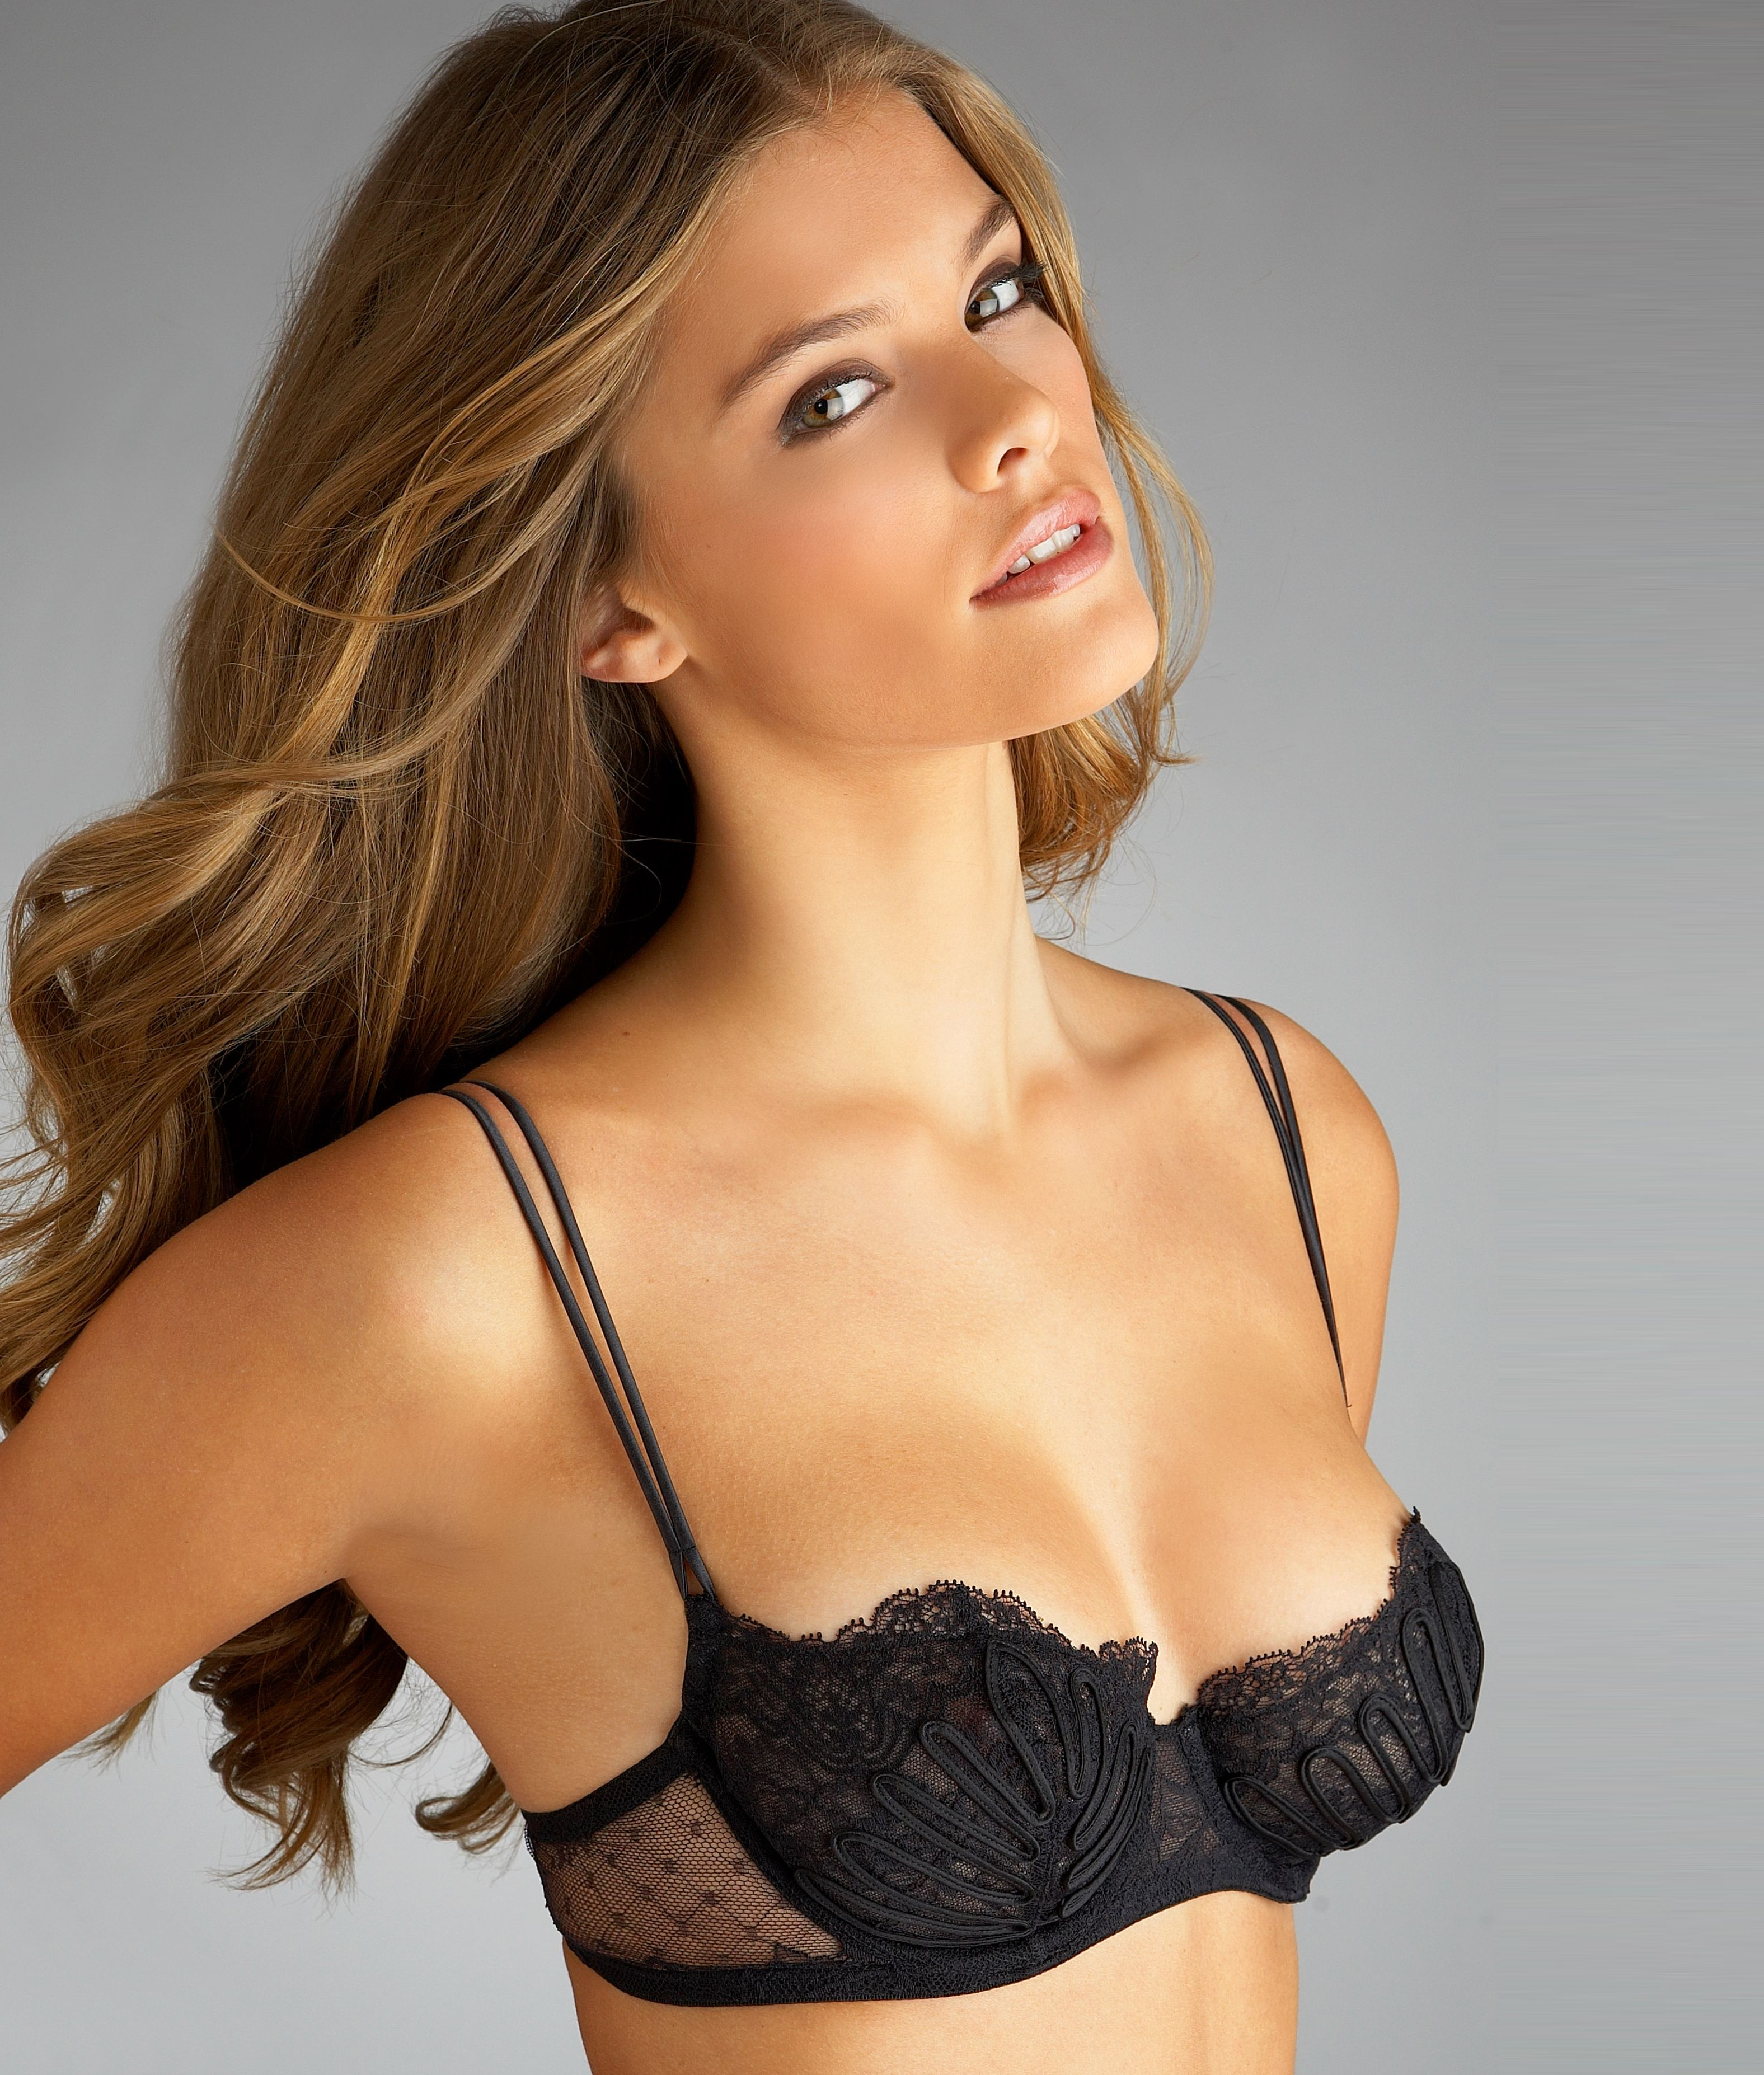 nina-agdal-bare-necessities-lingerie-2012-set-2-72